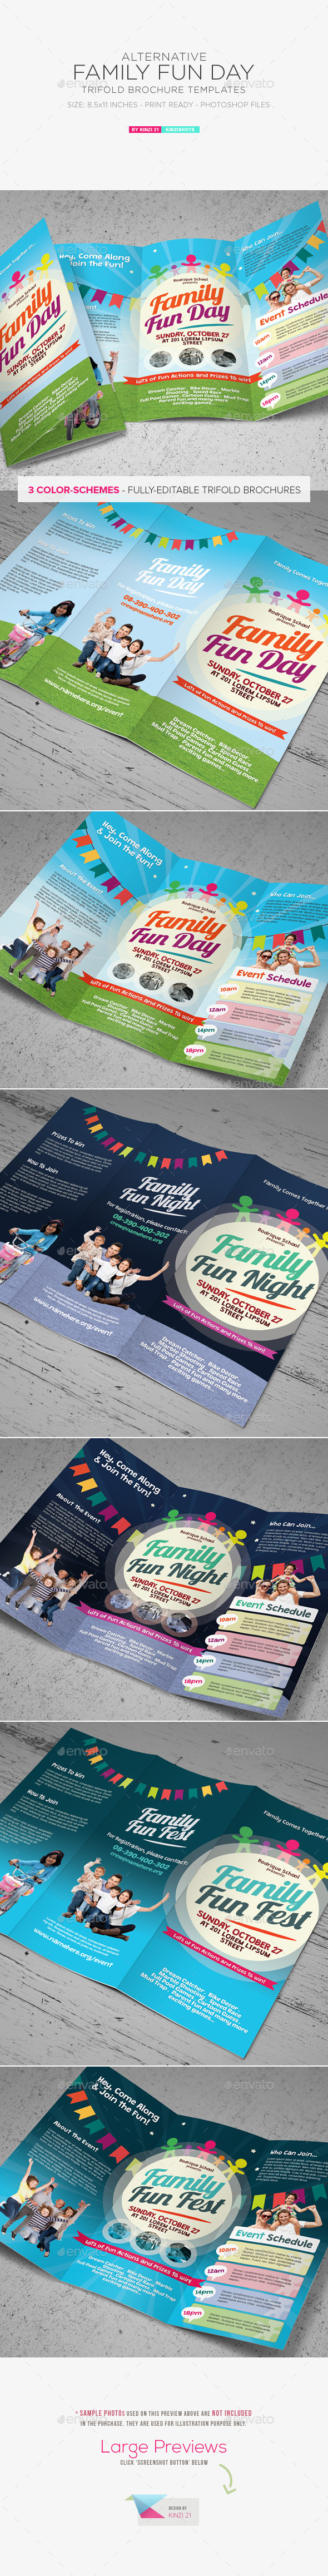 GraphicRiver Family Fun Day Trifold Brochures 11411178